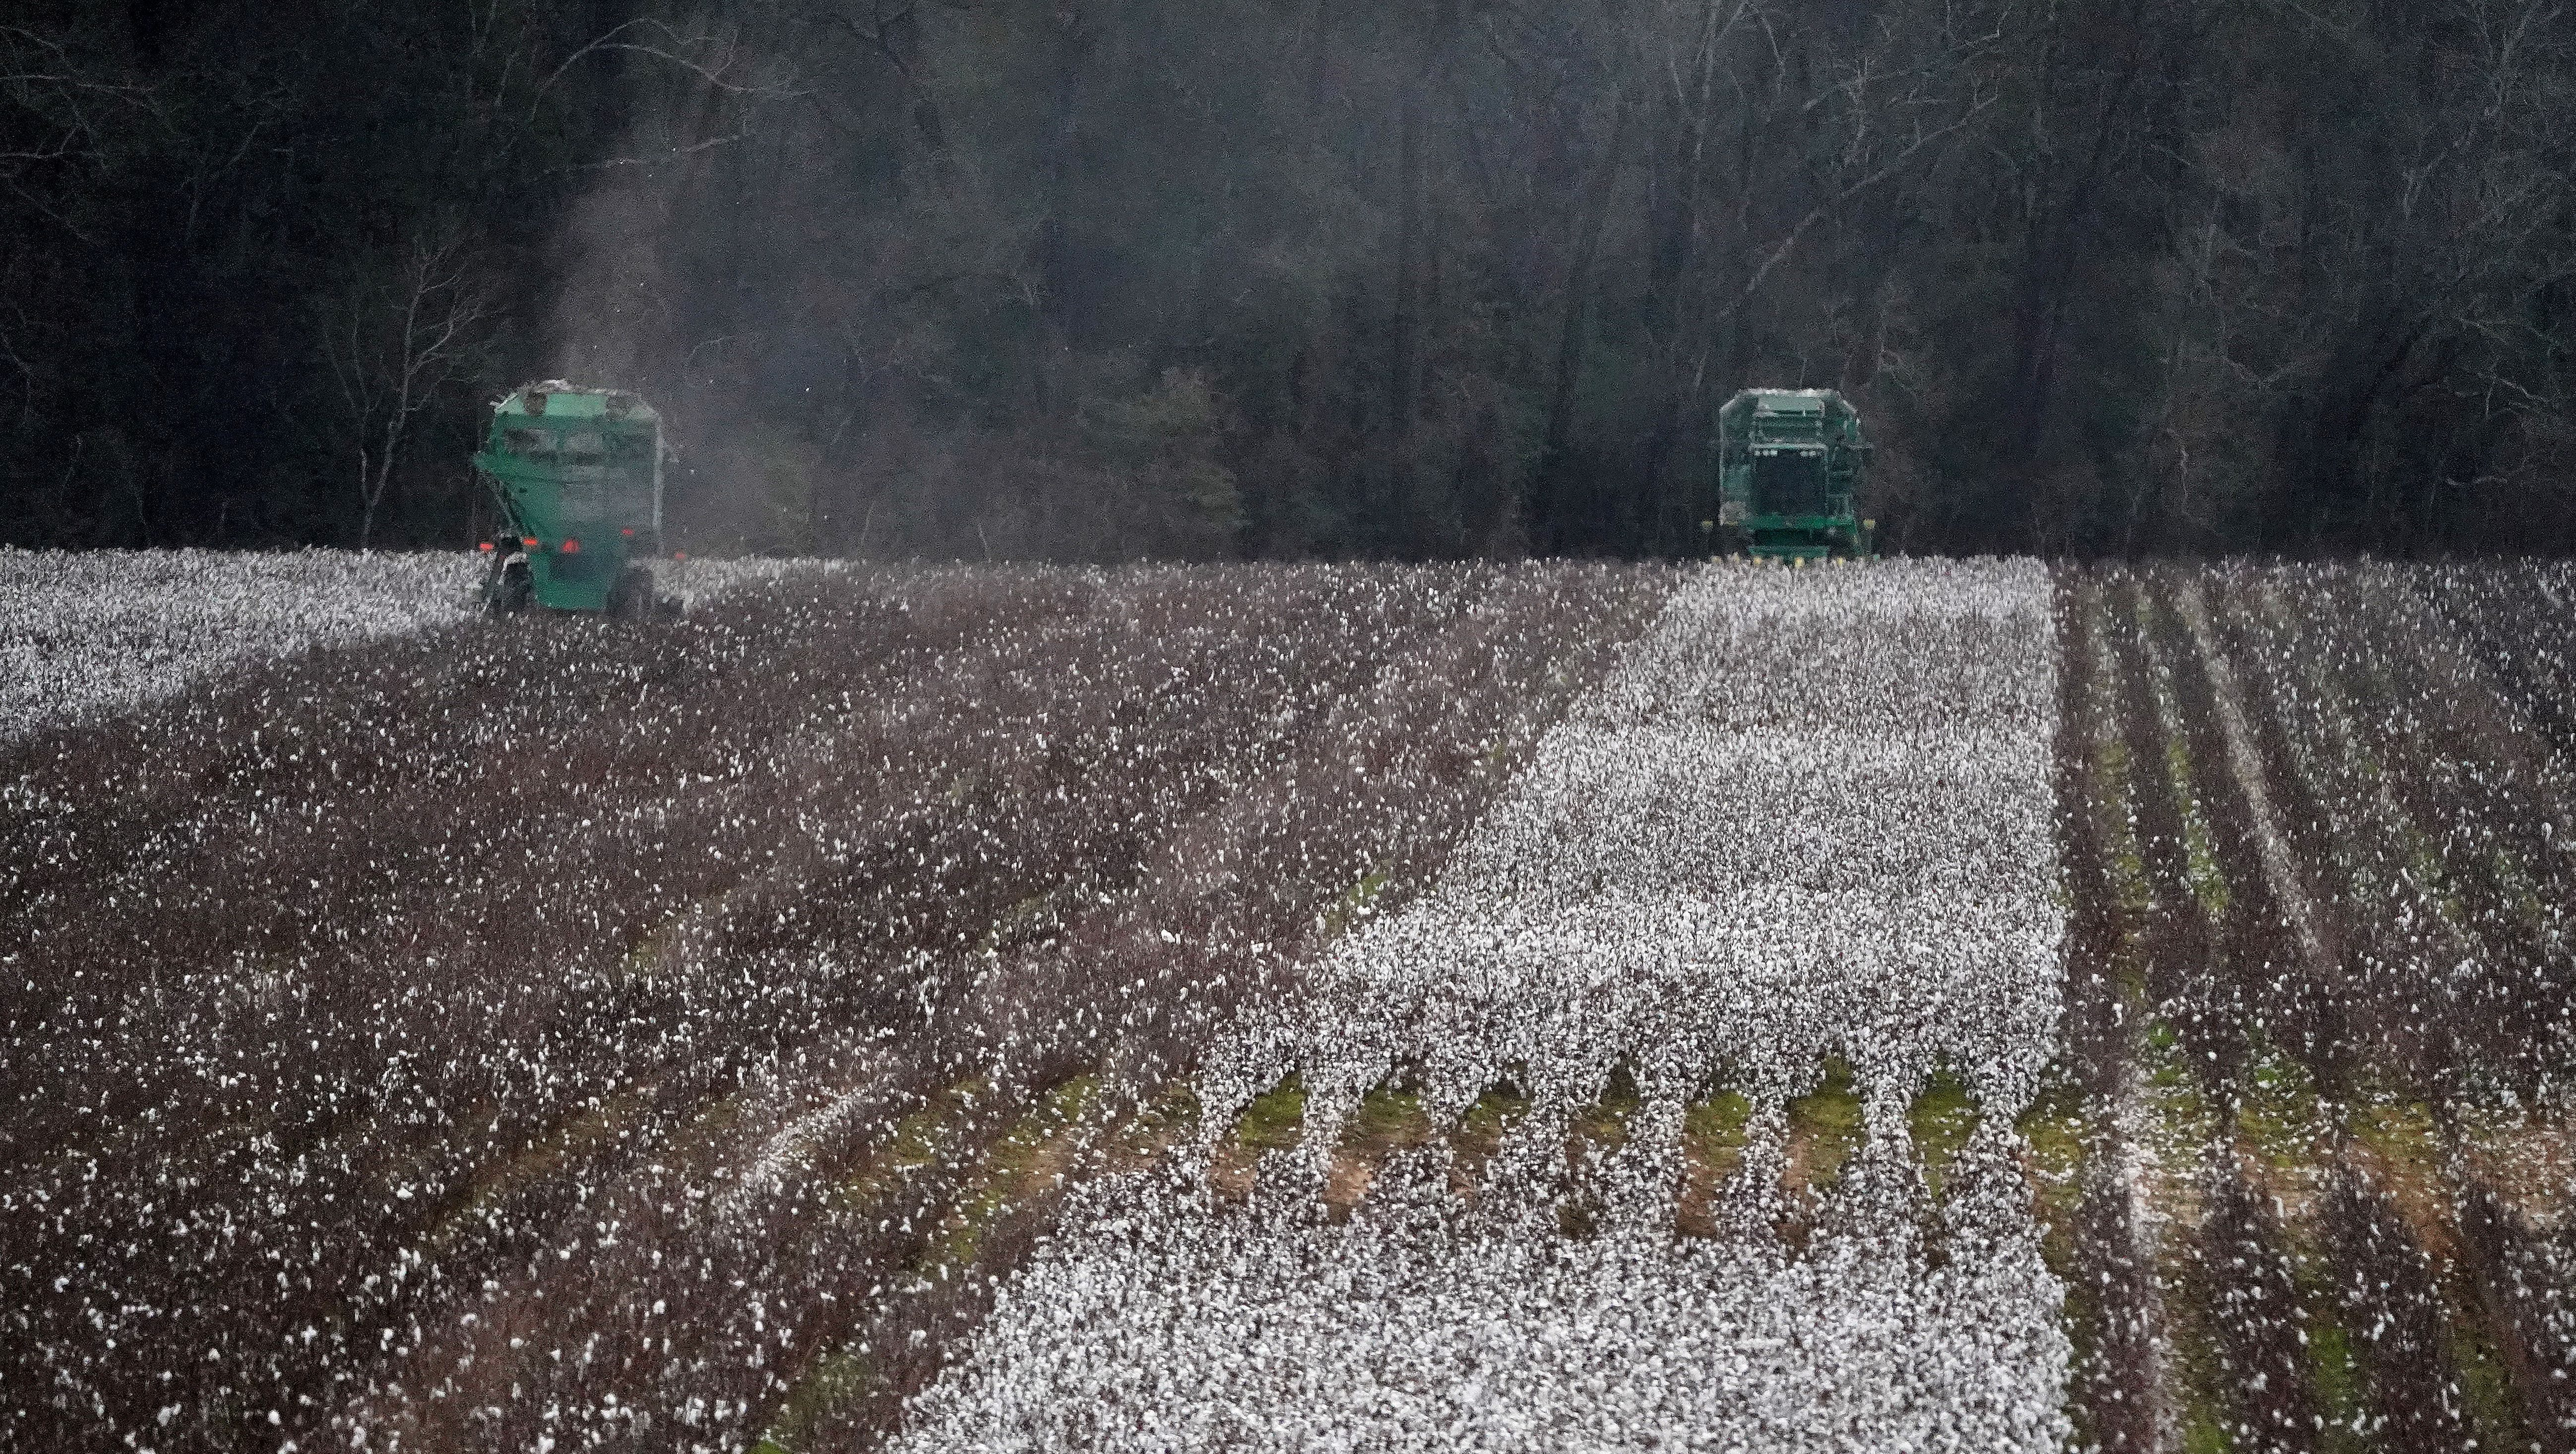 Farm equipment harvests cotton in a field just outside Montgomery, Alabama, U.S., December 14, 2017.